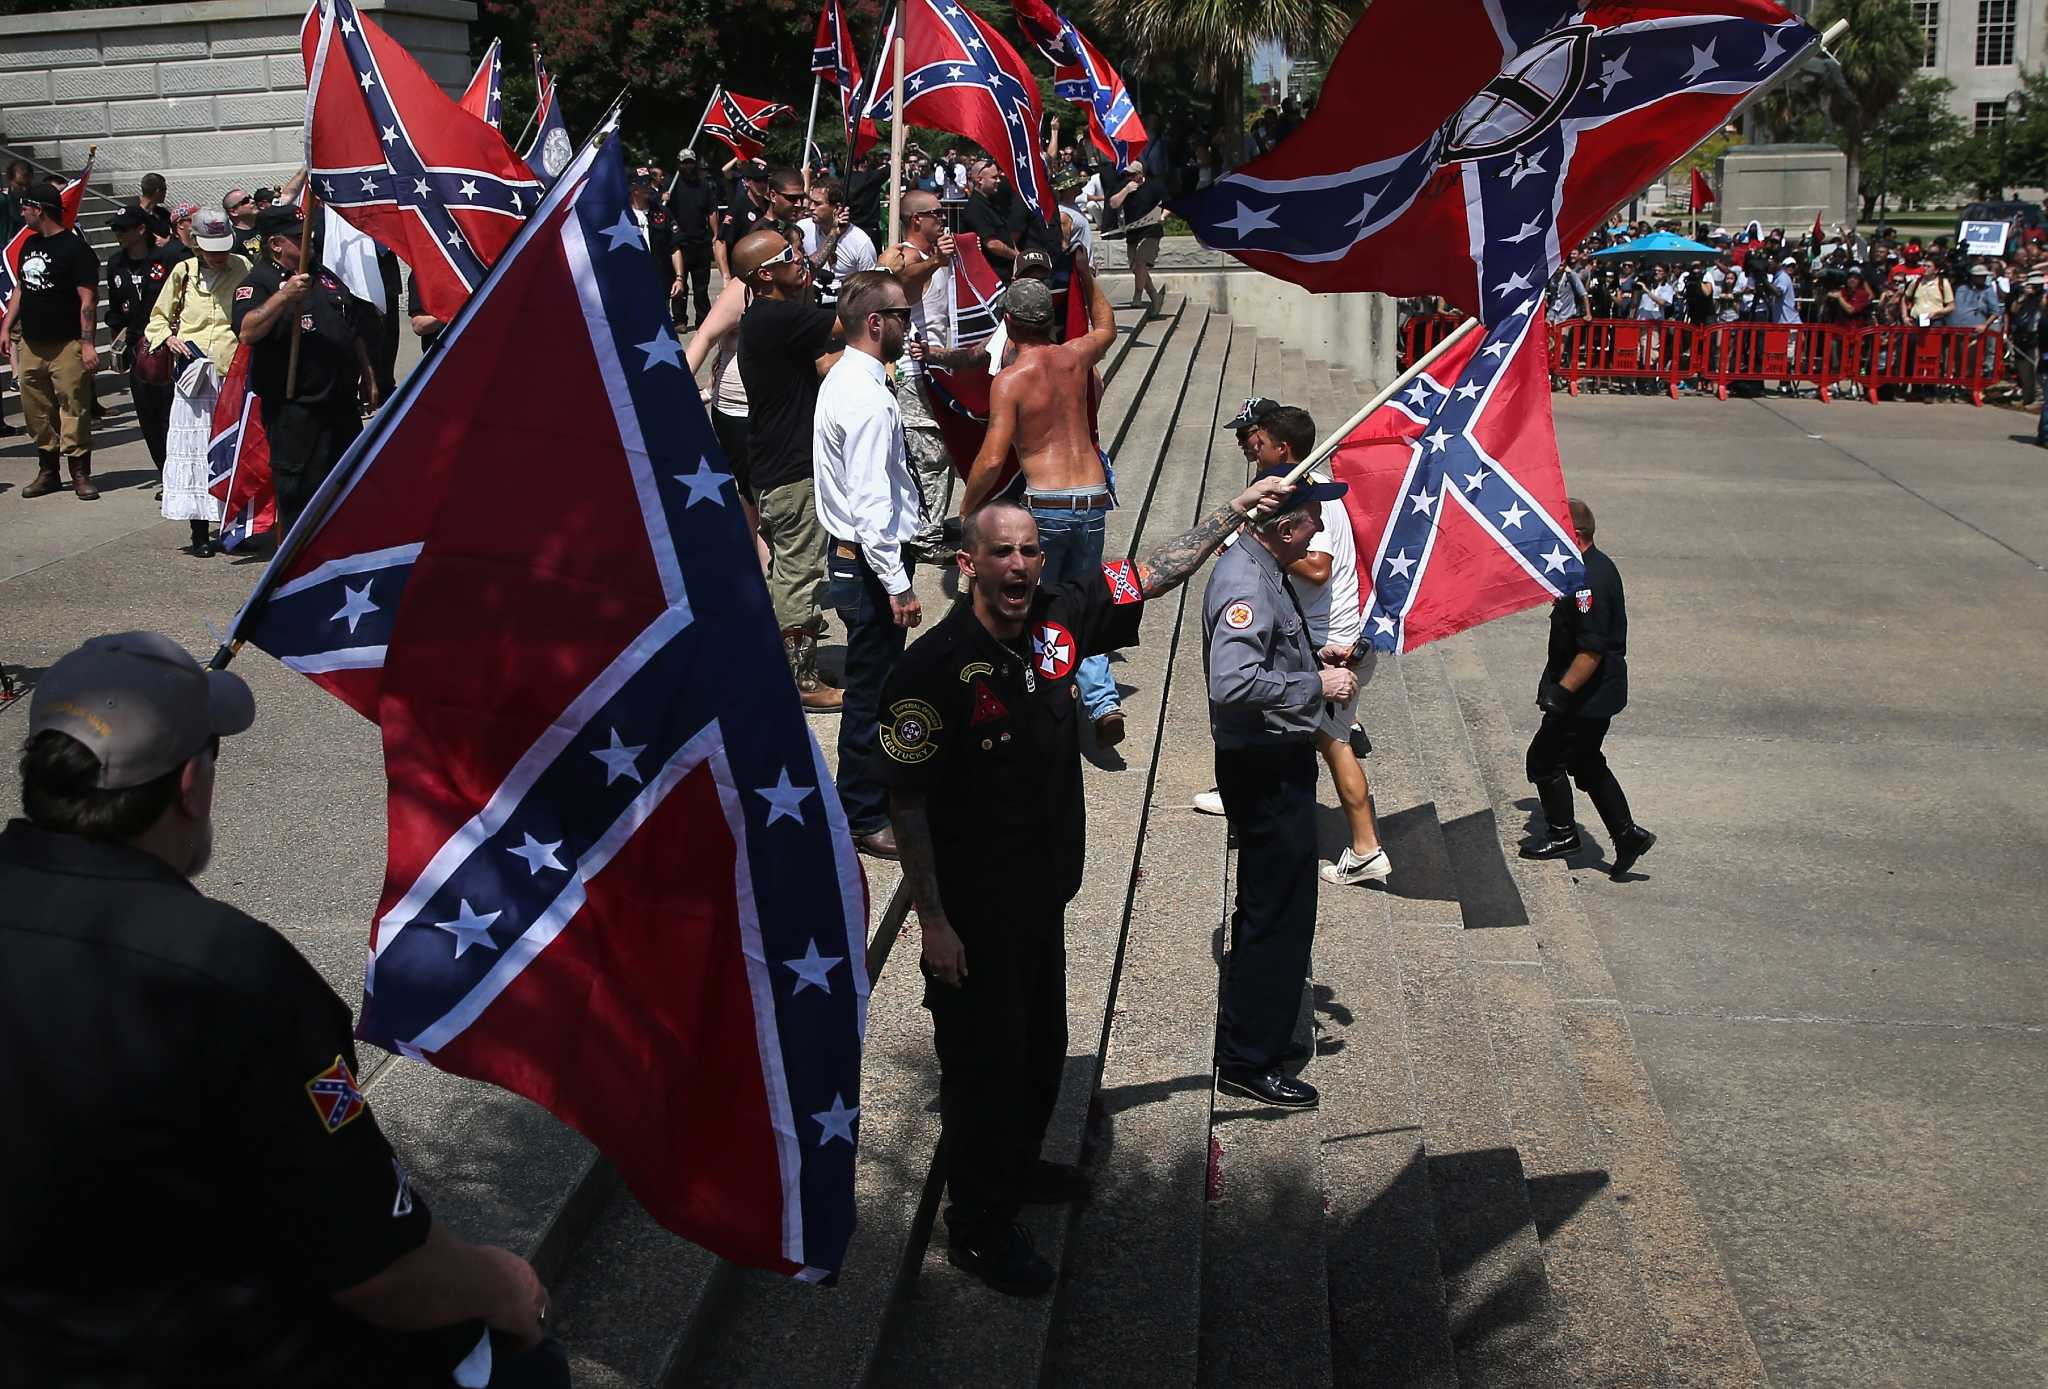 Ku Klux Klan To Celebrate Trump Victory With A Parade In